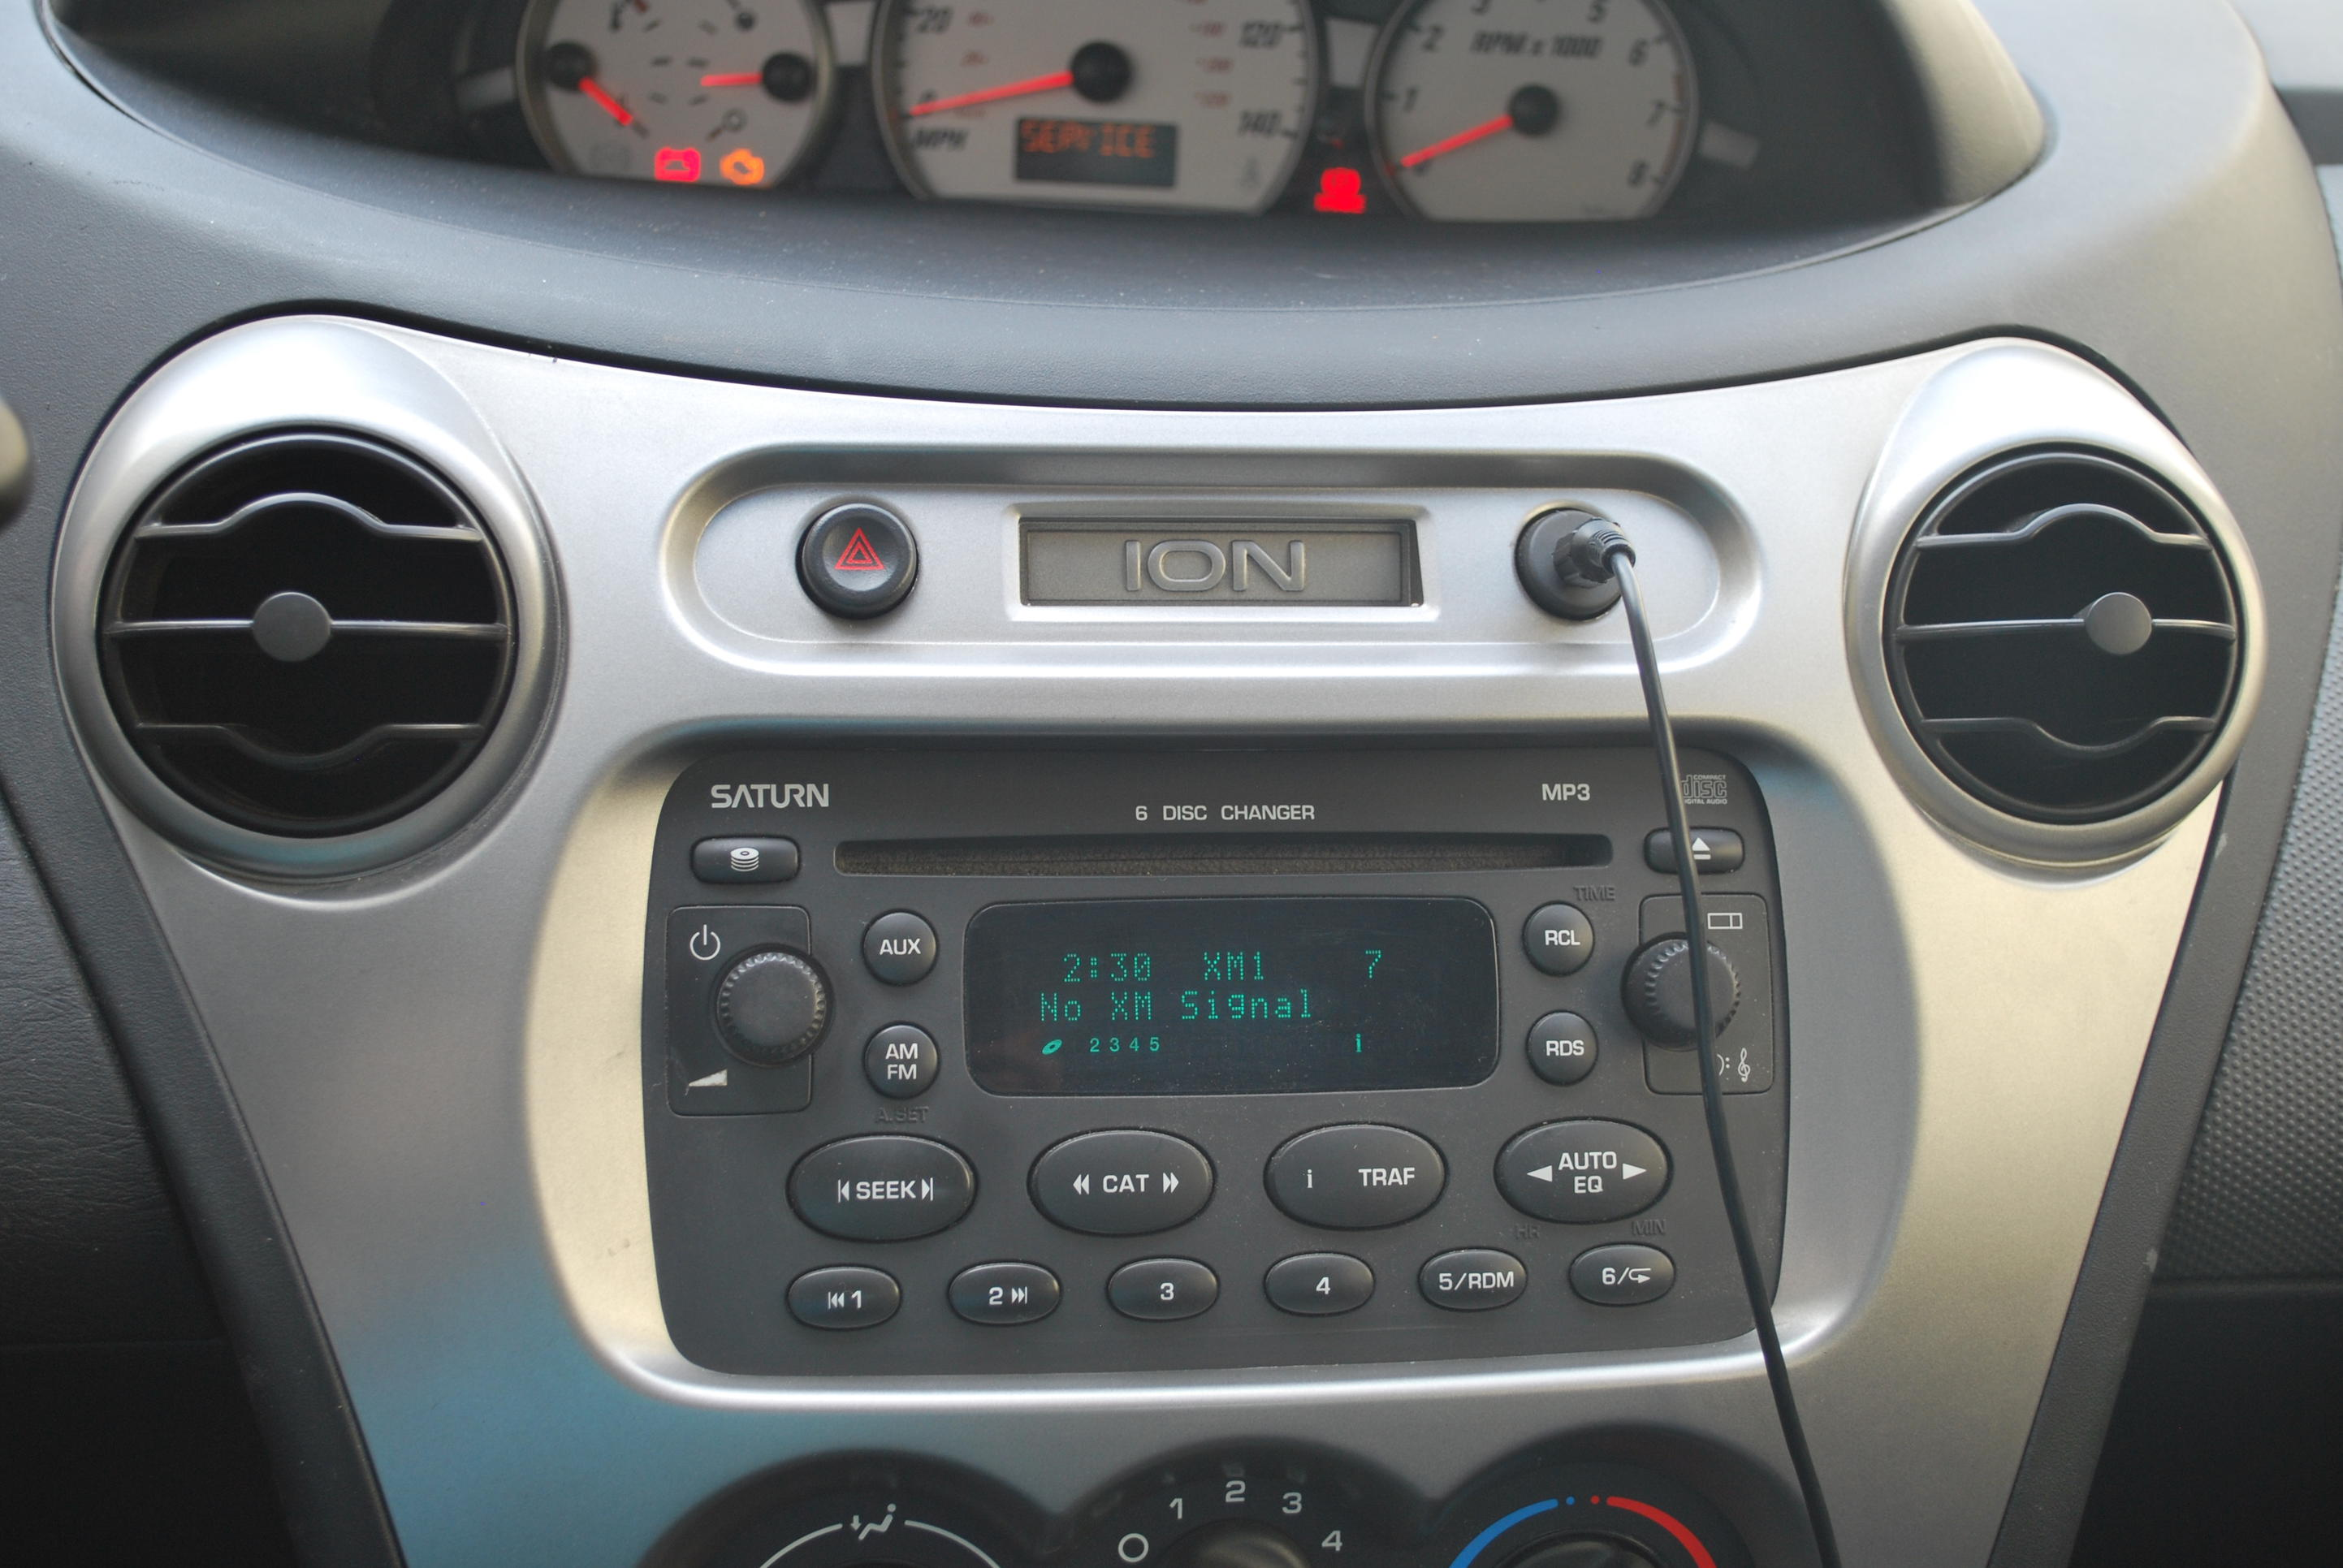 2009 saturn vue radio wiring diagram images radio system as well 2005 saturn ion together 2006 2007 vue radio am fm mp3